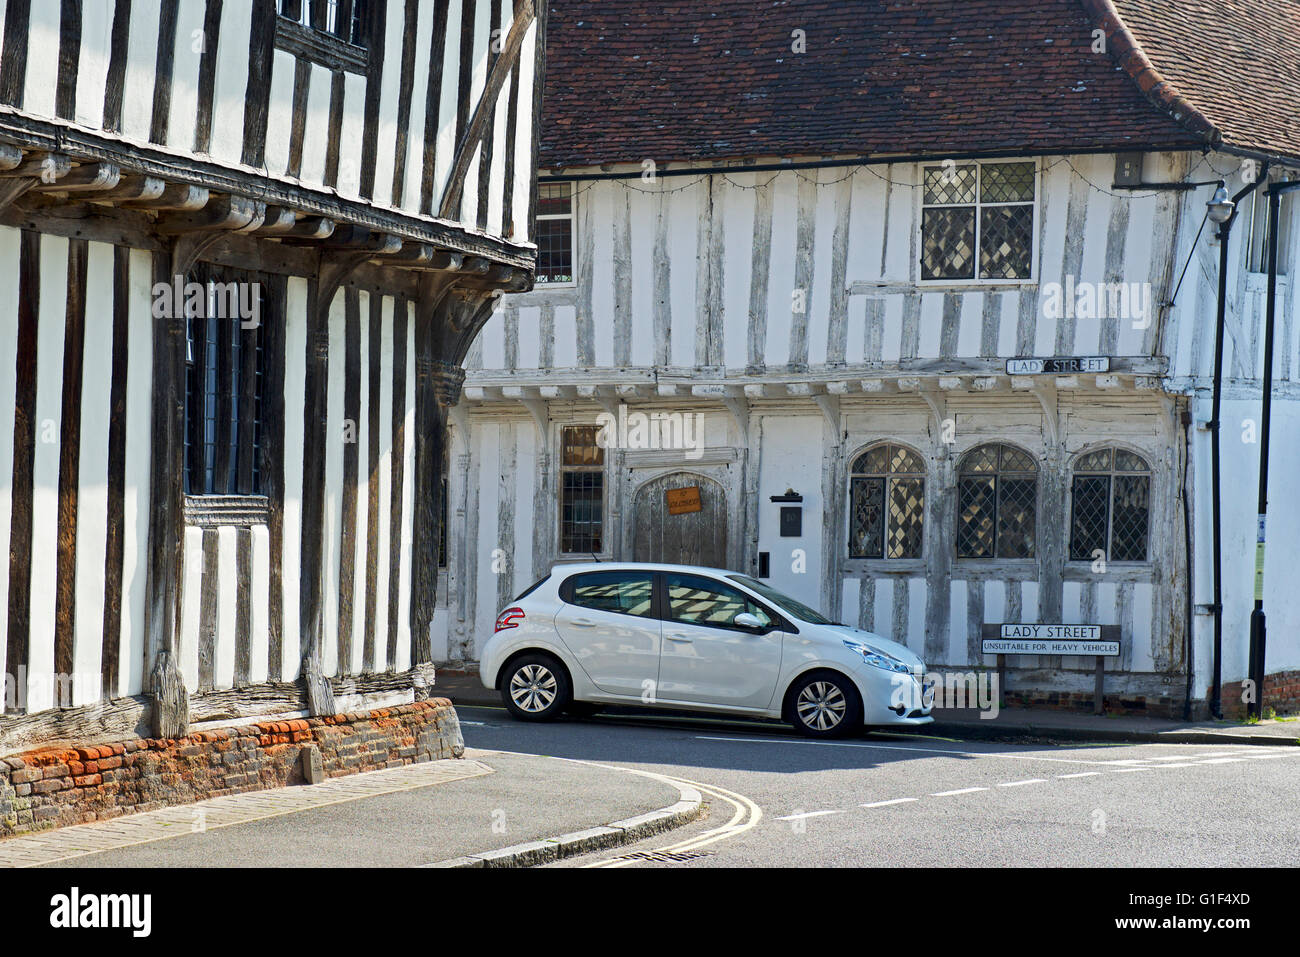 Car in the medieval village of Lavenham, Suffolk, England UK - Stock Image